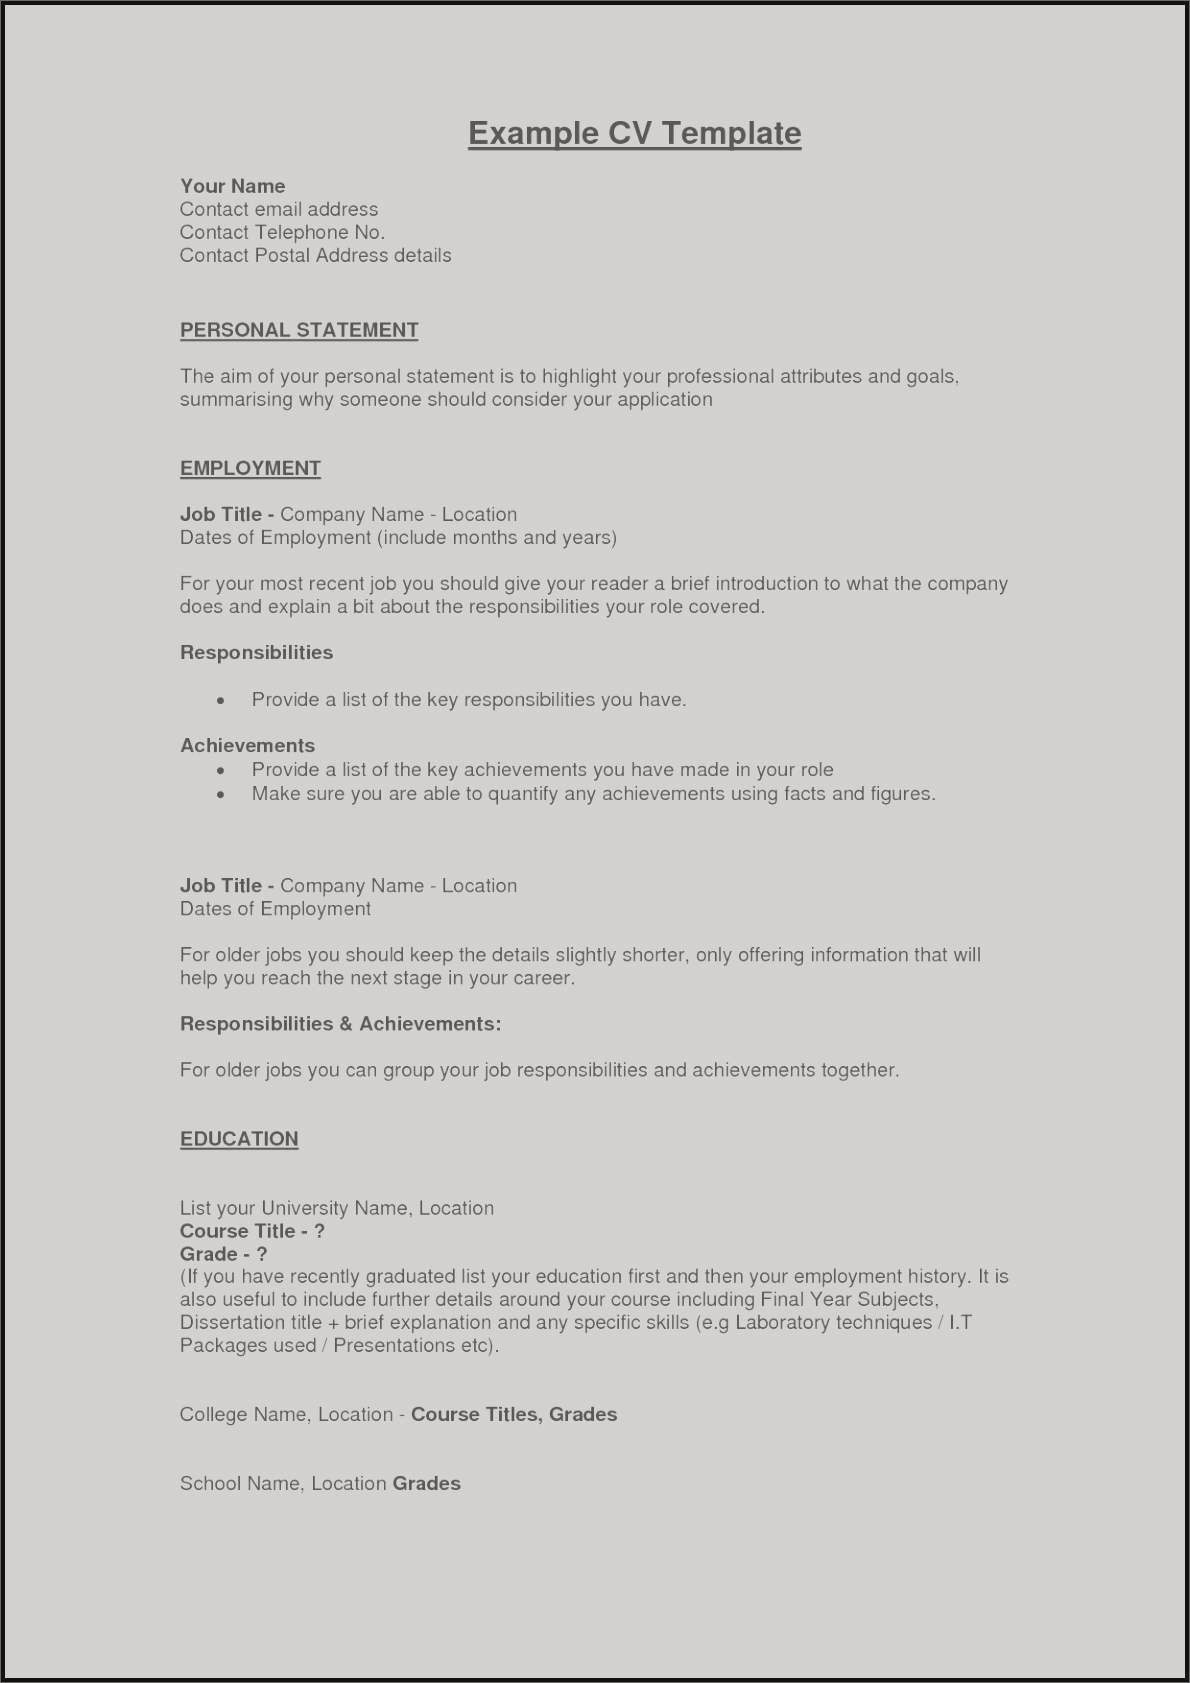 Dating Resume Template - Freshers Resume Samples New Example Perfect Resume Fresh Examples